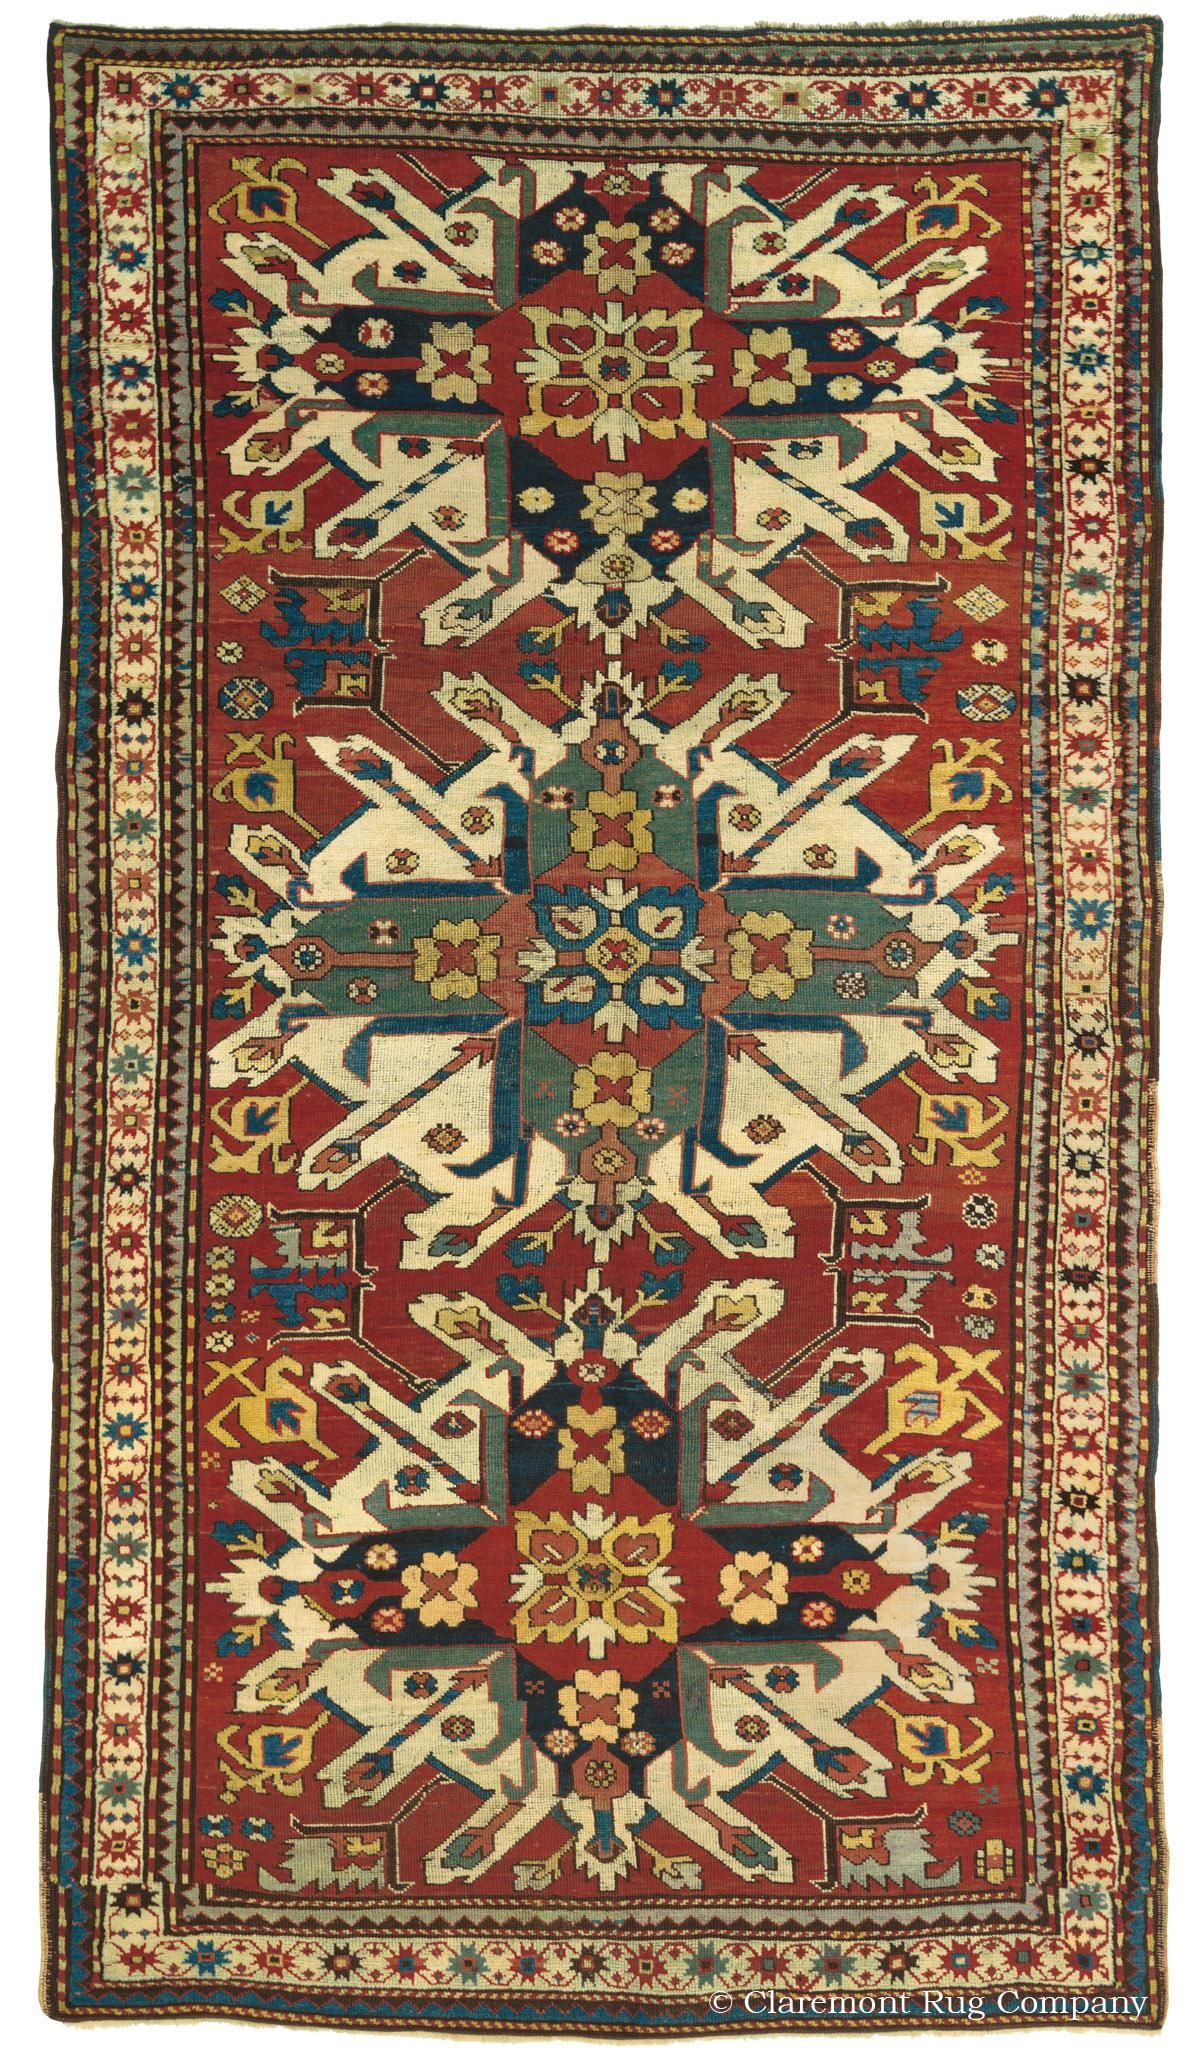 """EAGLE KAZAK (CHELABERD KARABAGH), Southern Central, 4ft 10in x 8ft 8in, Circa 1850. An exceptional, early representative of one of the most illustrious collectible antique Caucasian rug styles, this over-150-year-old Eagle Kazak (Chelaberd Karabagh) rug is truly stunning. In the """"Triple Eagle"""" format, each of its """"sunburst"""" medallions is delightfully asymmetrical and visually expansive."""